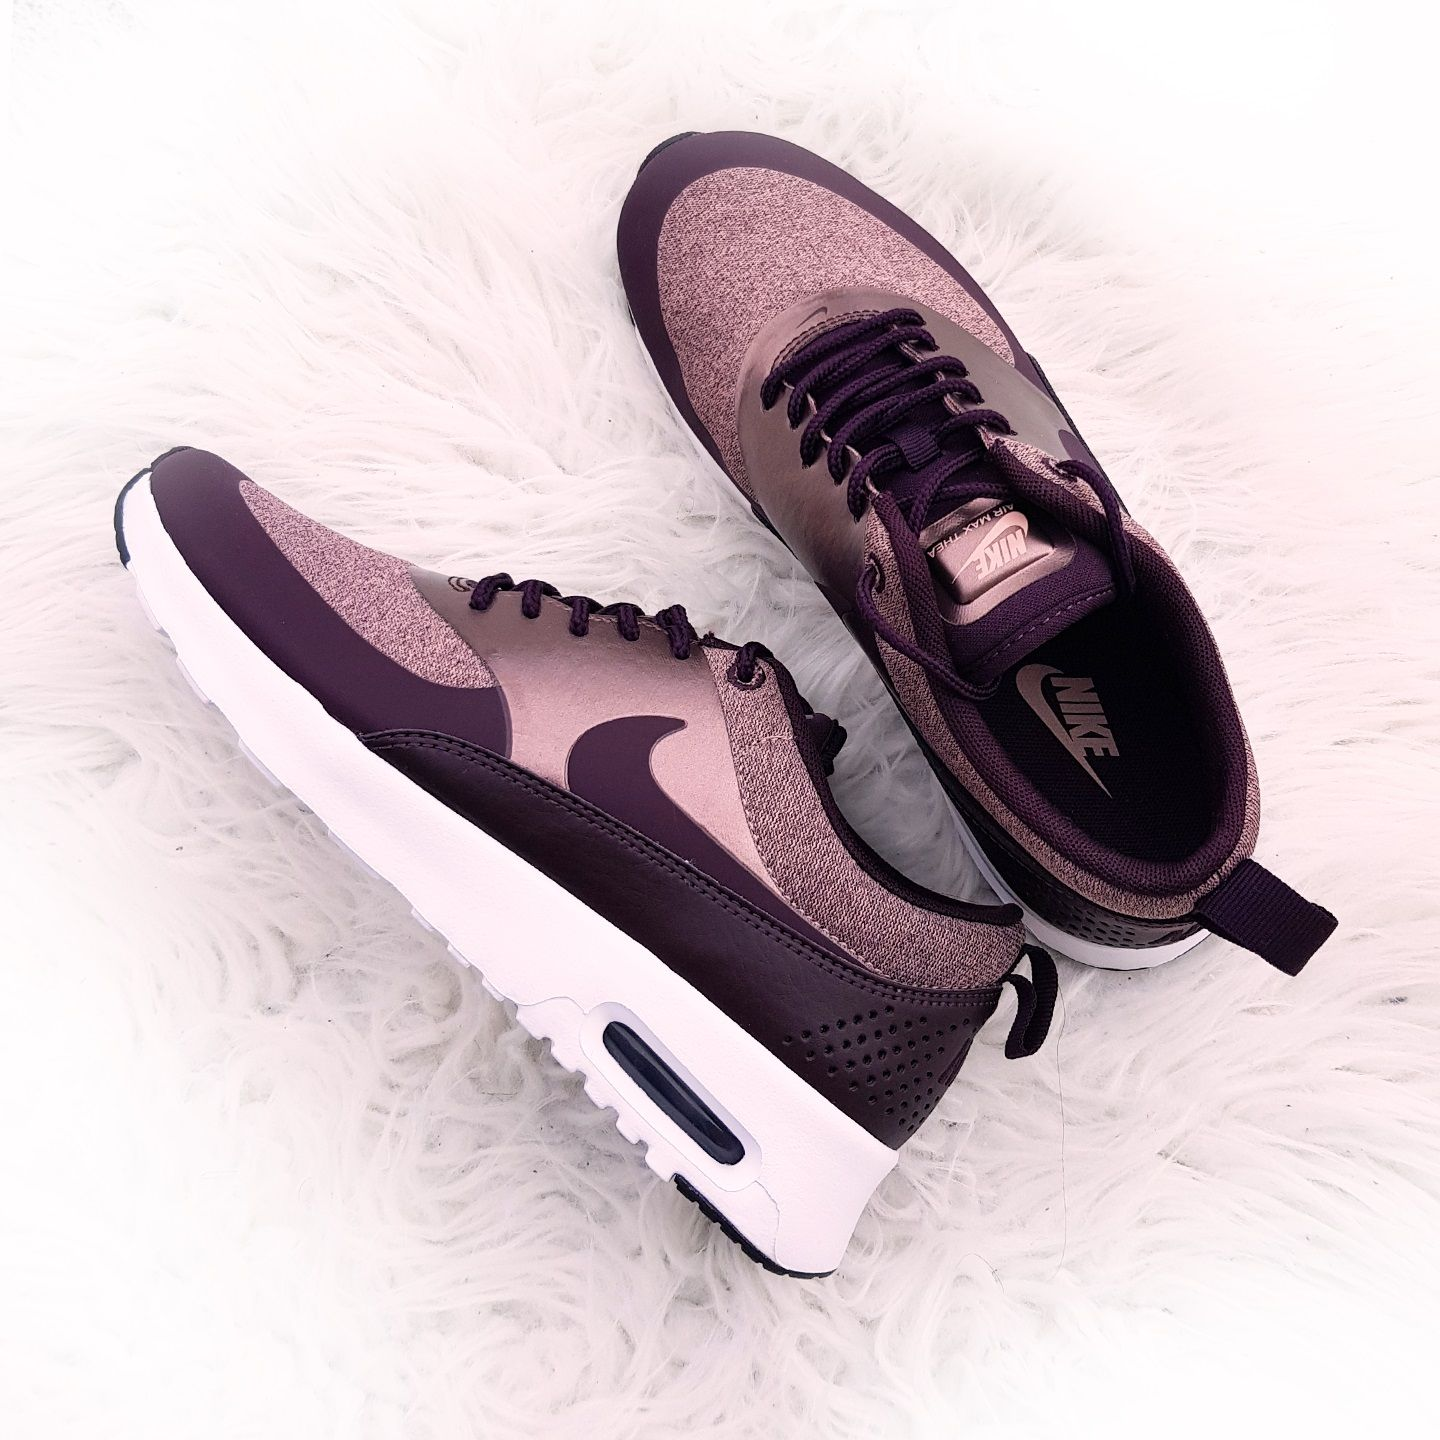 d59f07e6c8 Nike Air Max Thea Knit - Port Wine/Particle Pink/Schwarz/Metallic Mahogany